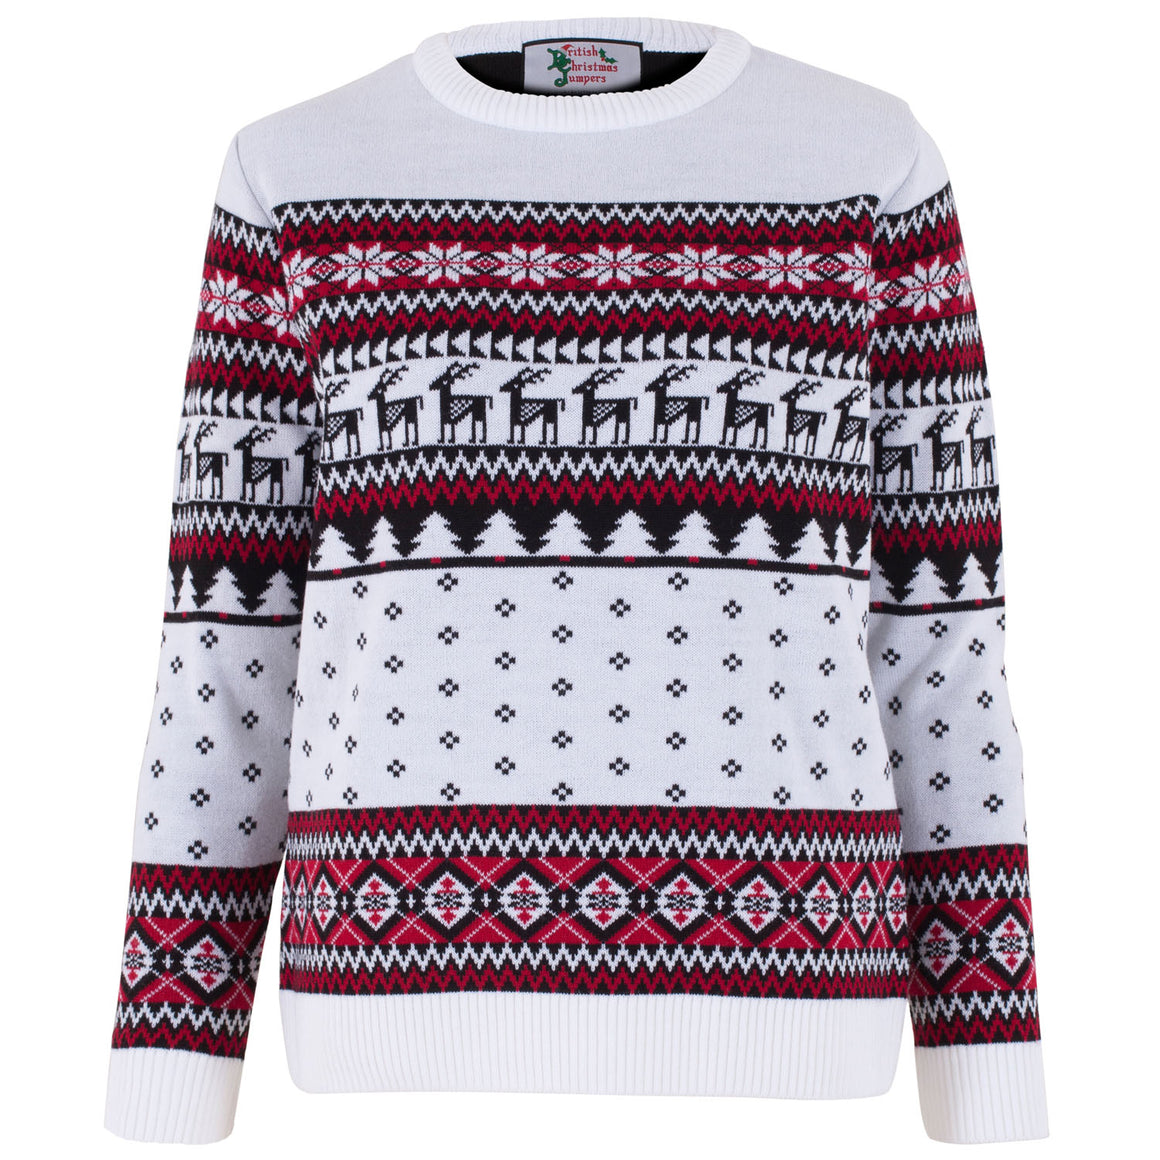 Classic Womens Fairisle Christmas Jumper